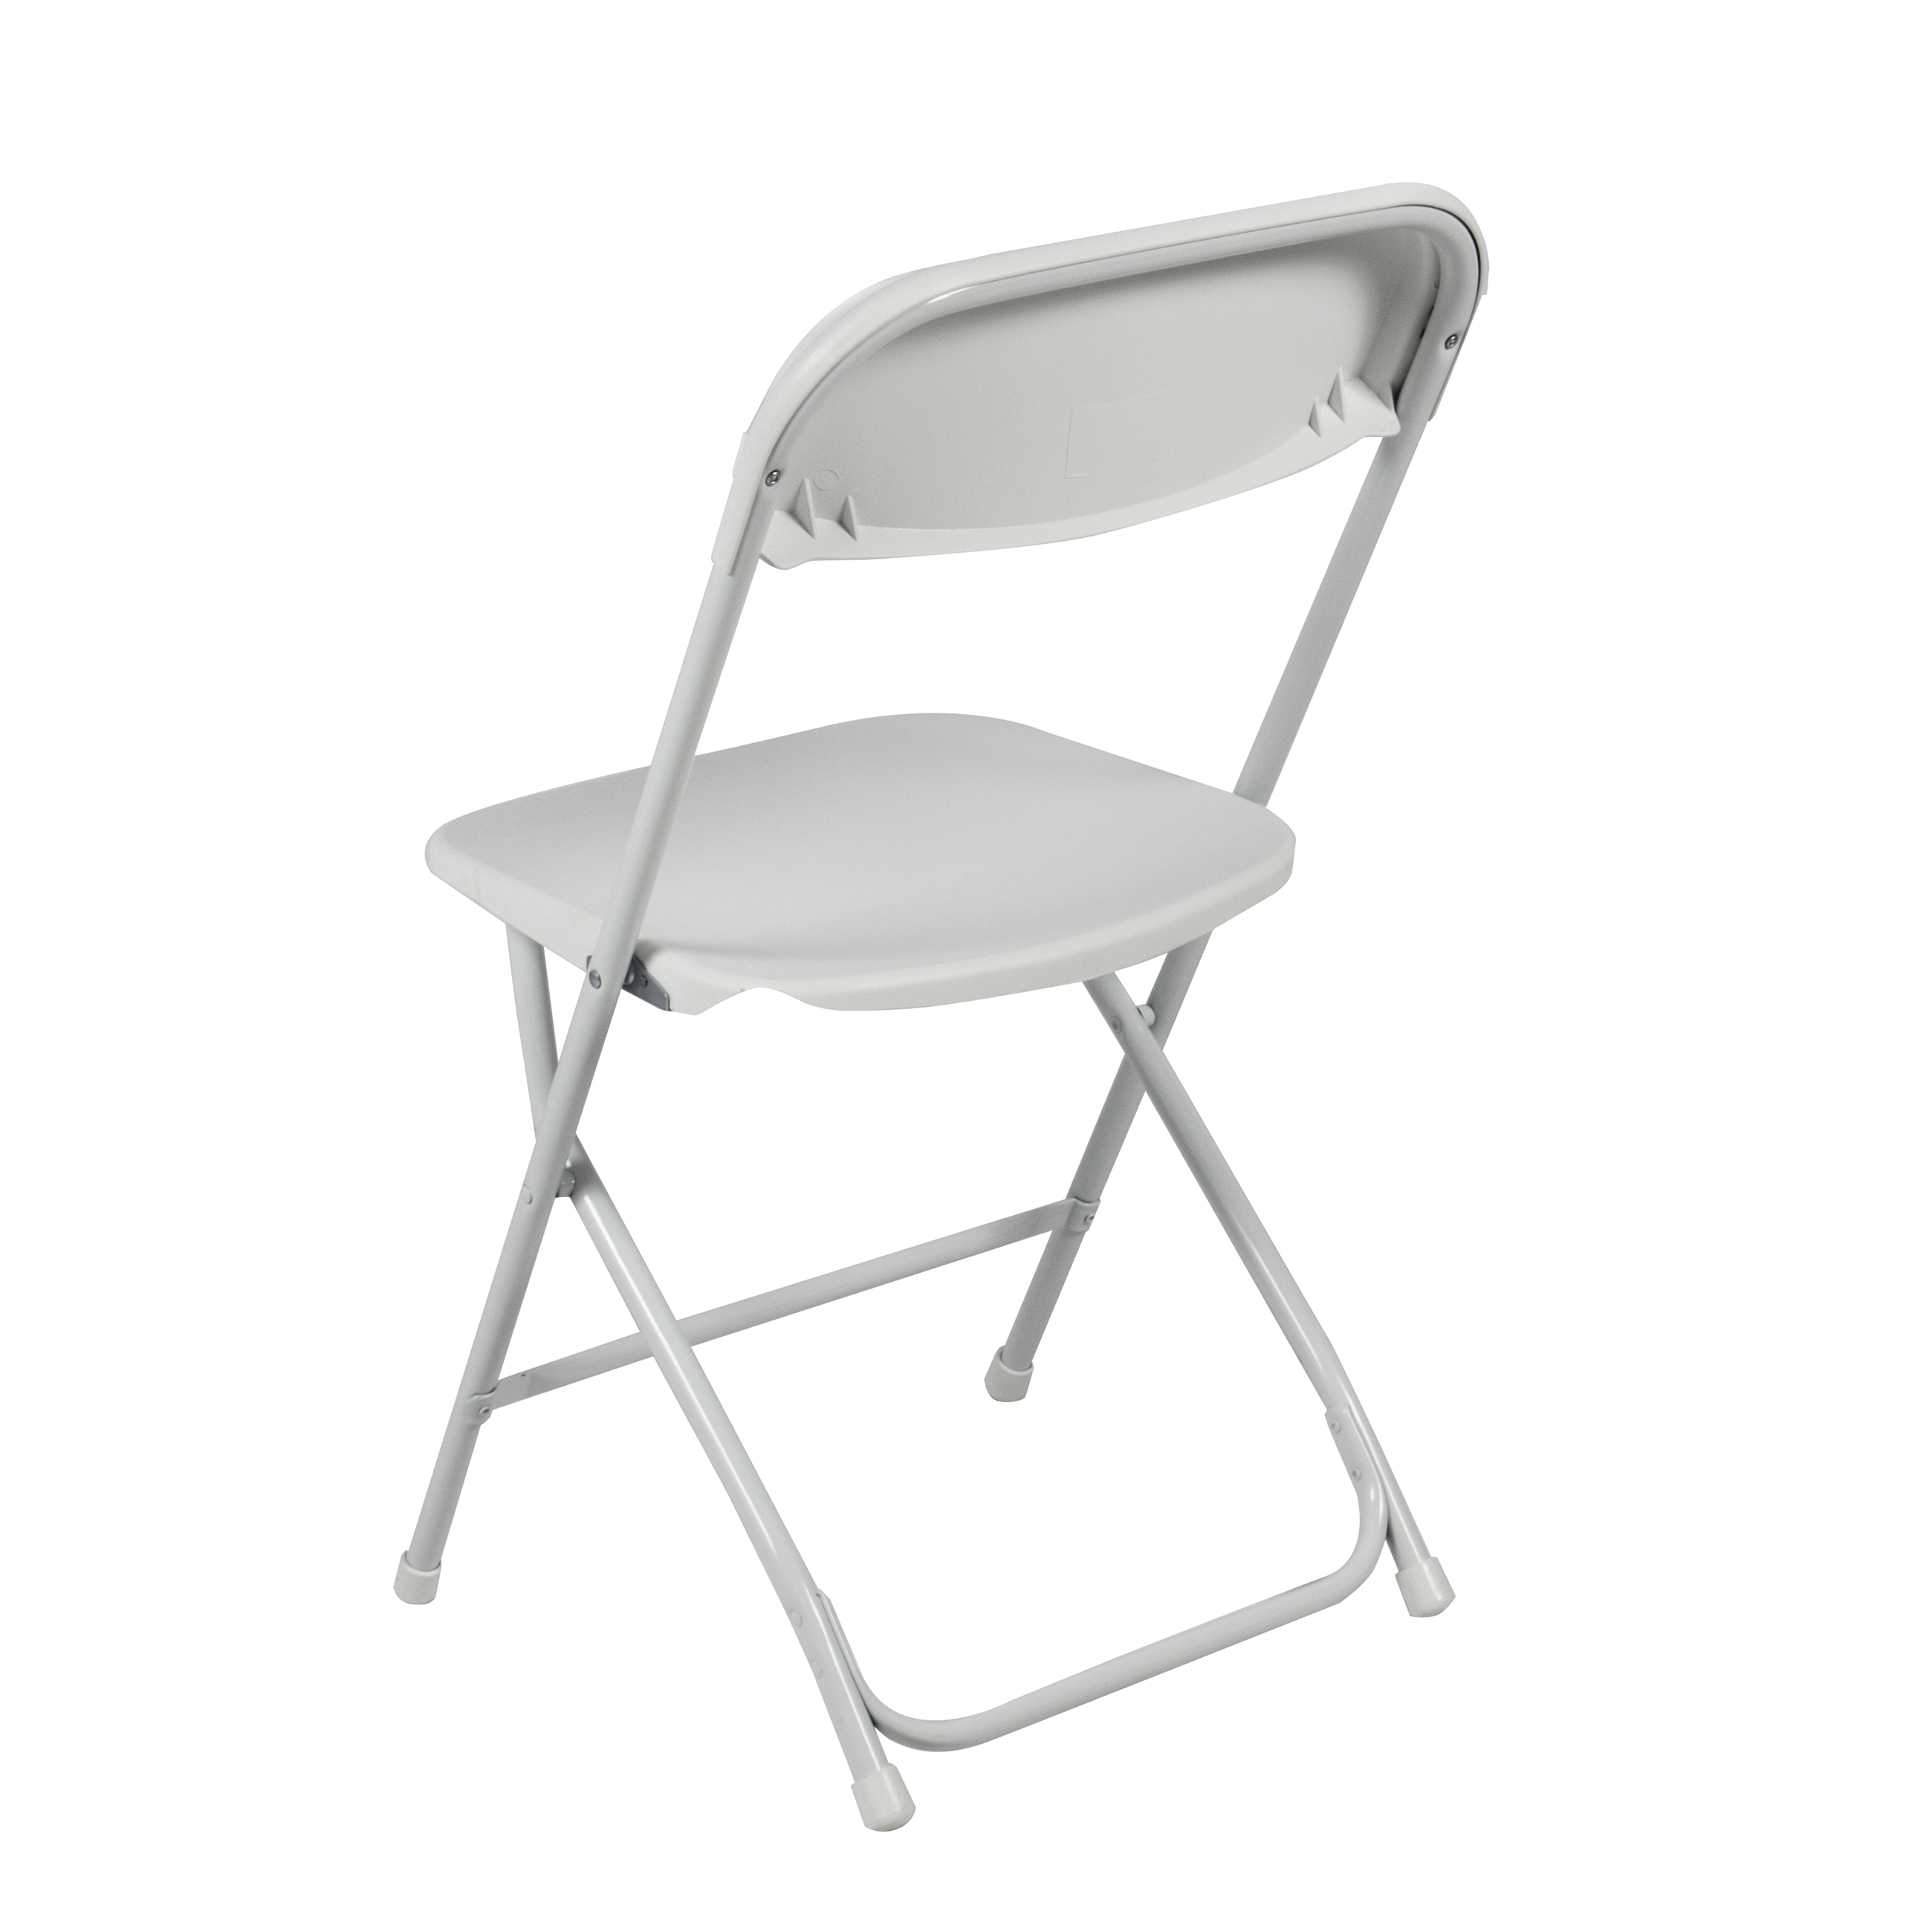 5 Pack mercial White Plastic Folding Chairs Stackable Wedding